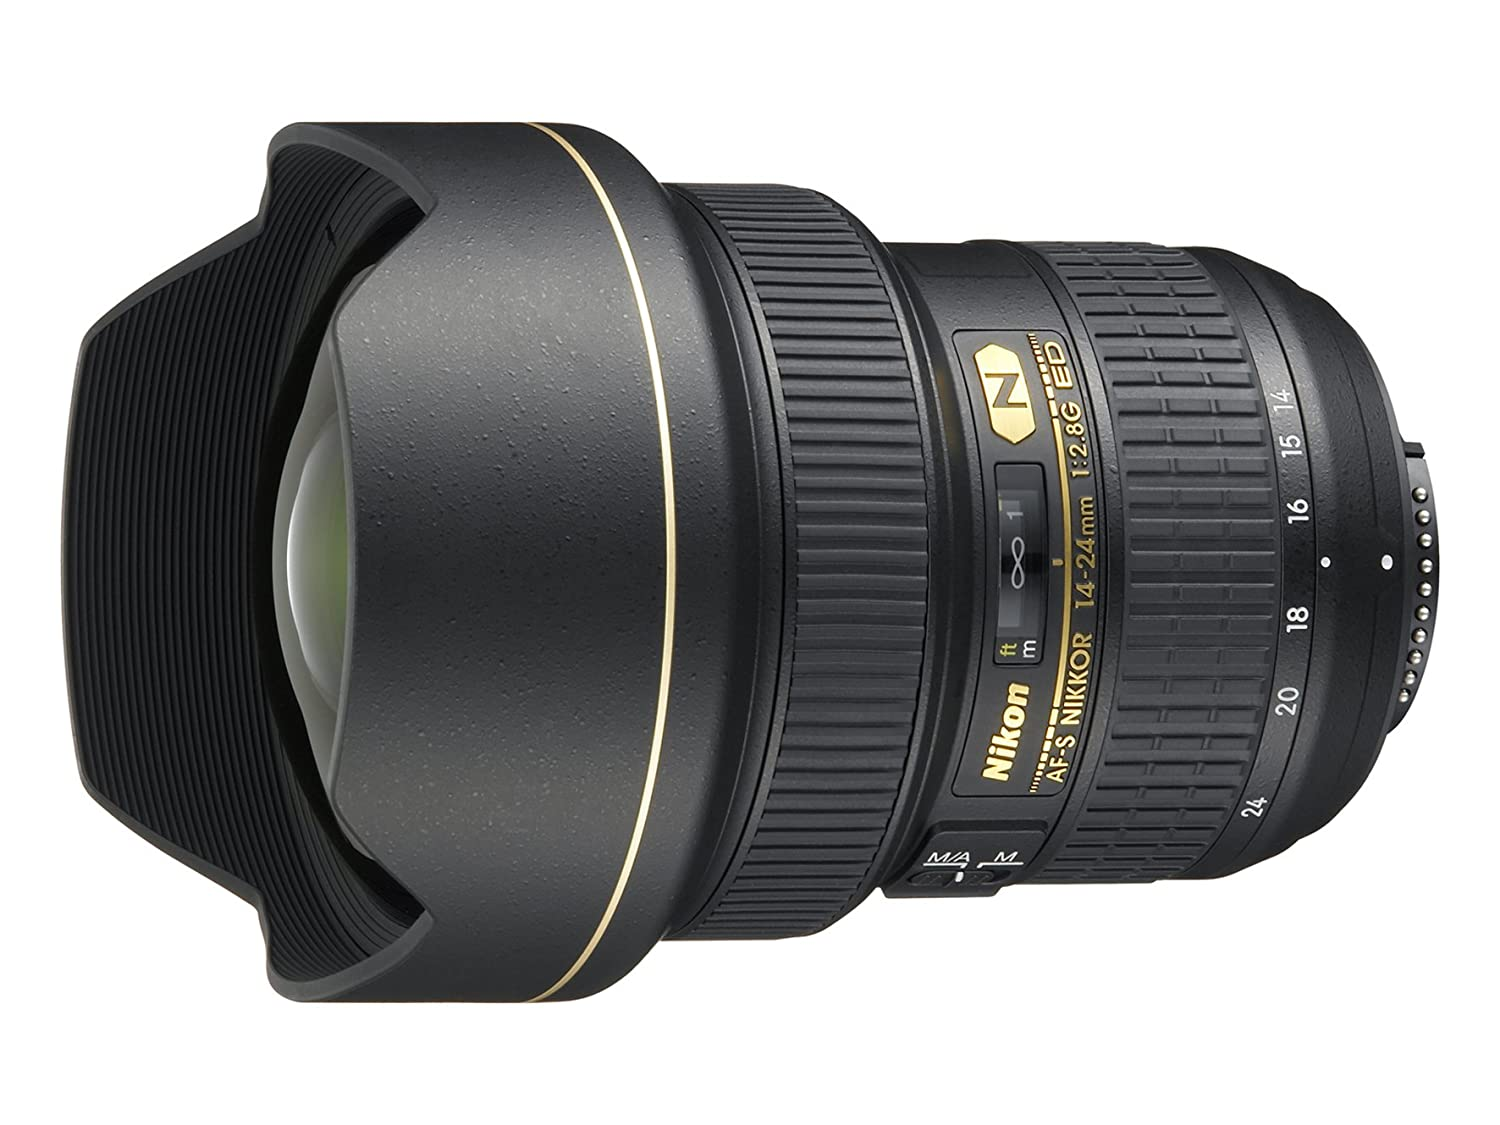 nikon 14-24 wide angle lens for landscape photography